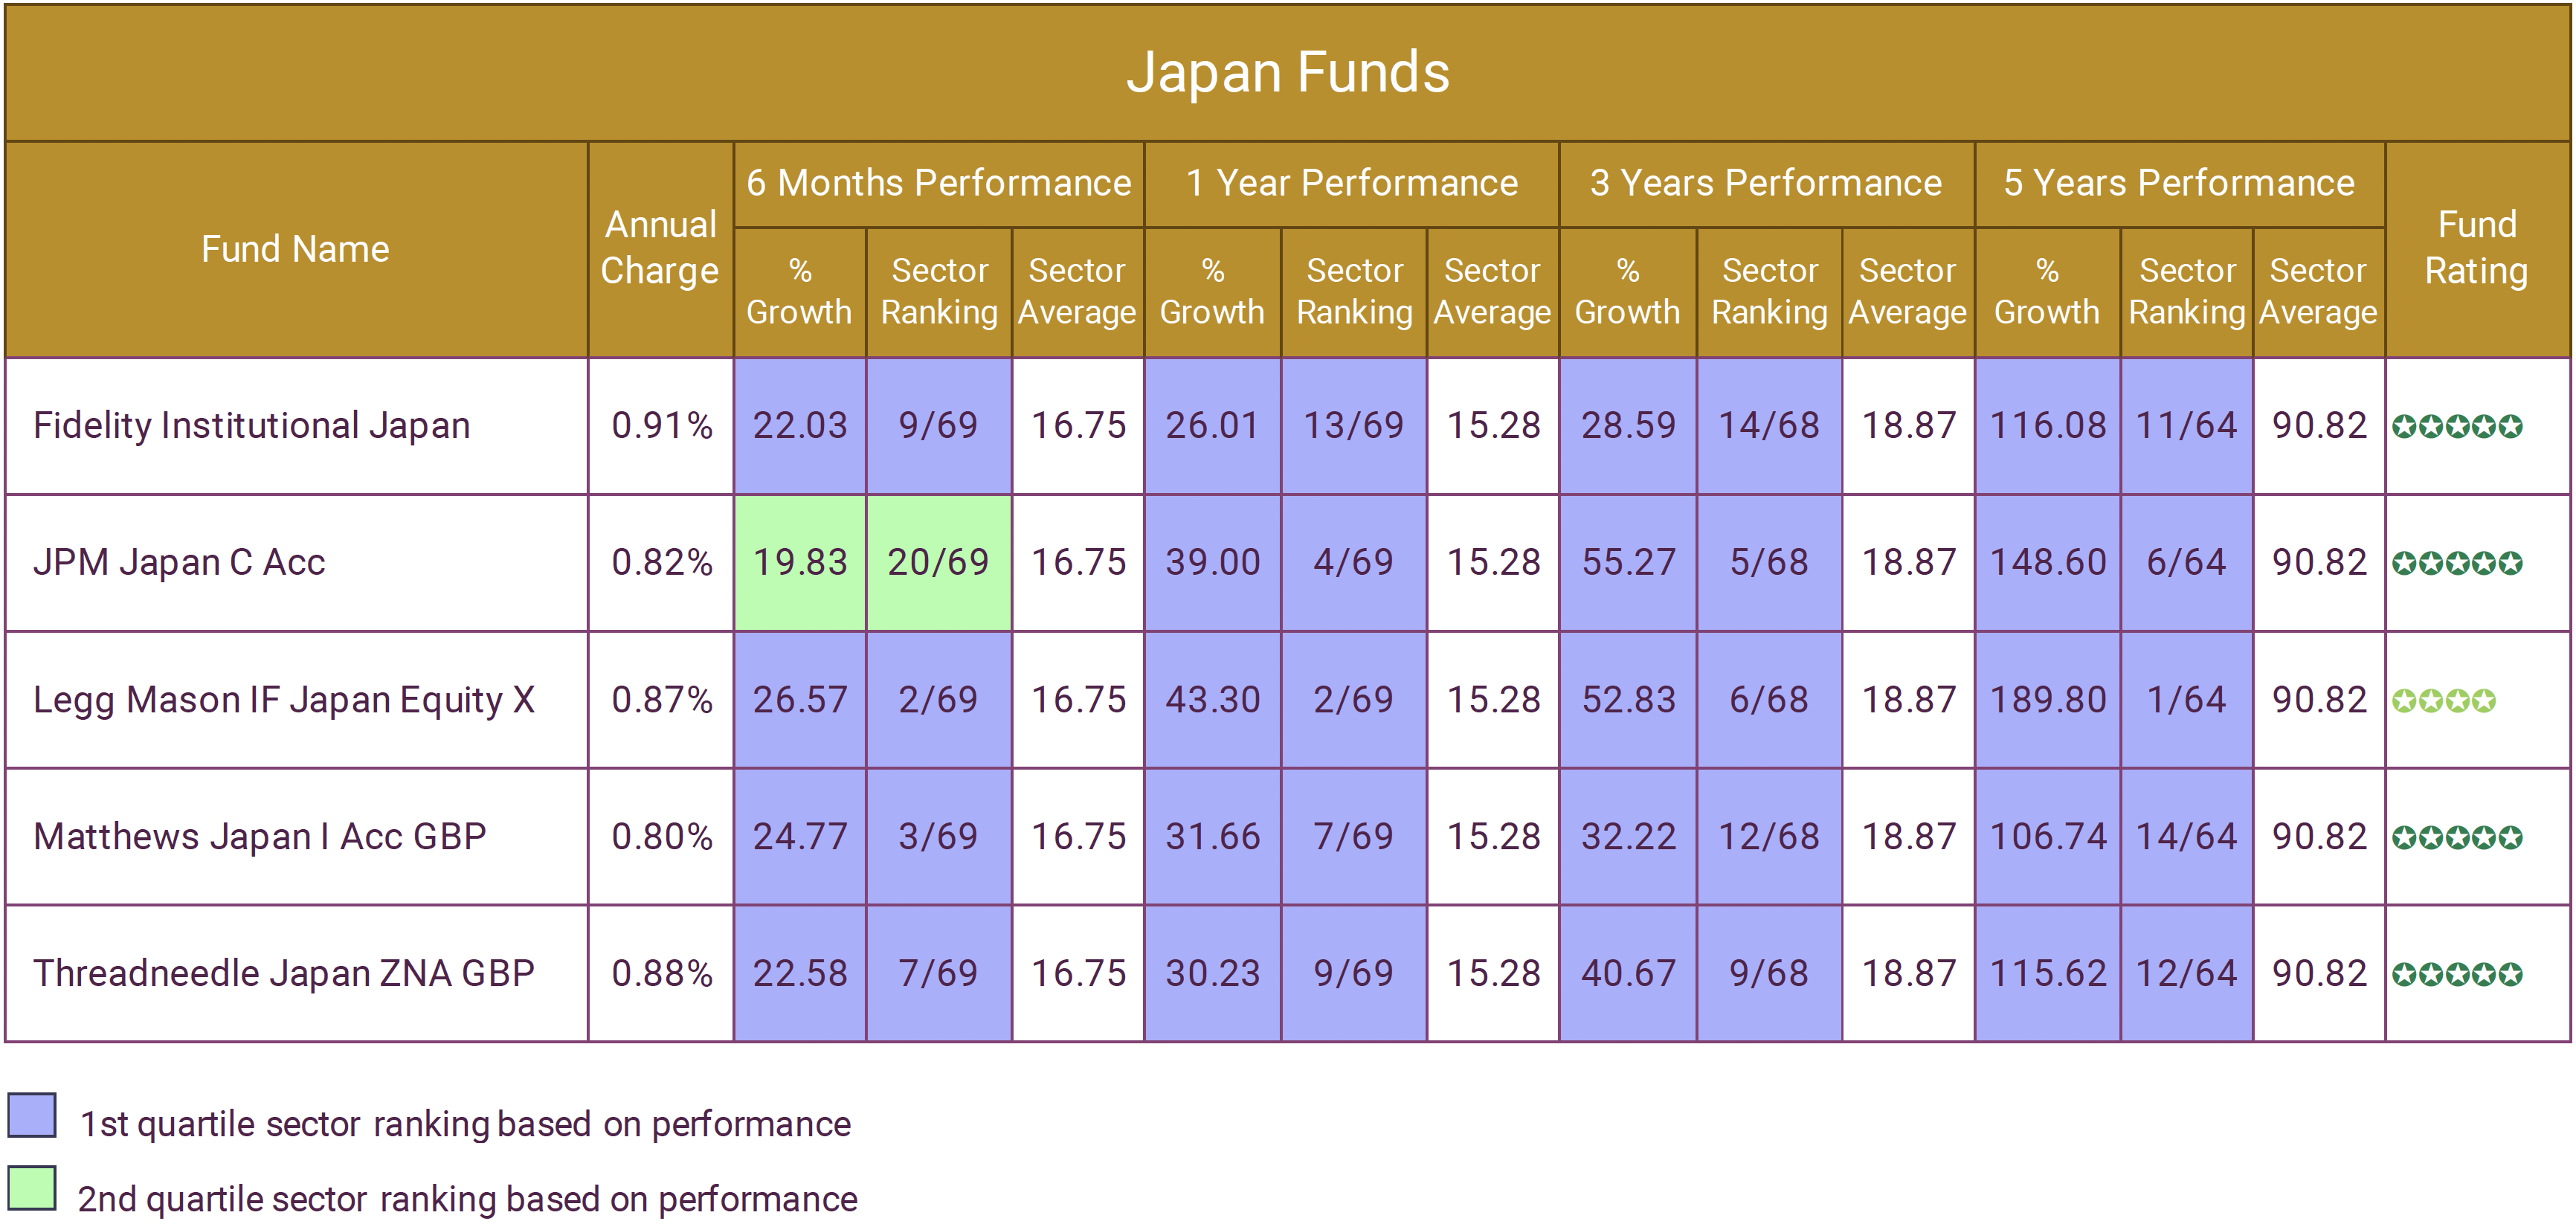 JAPAN FUNDS MARCH 2021